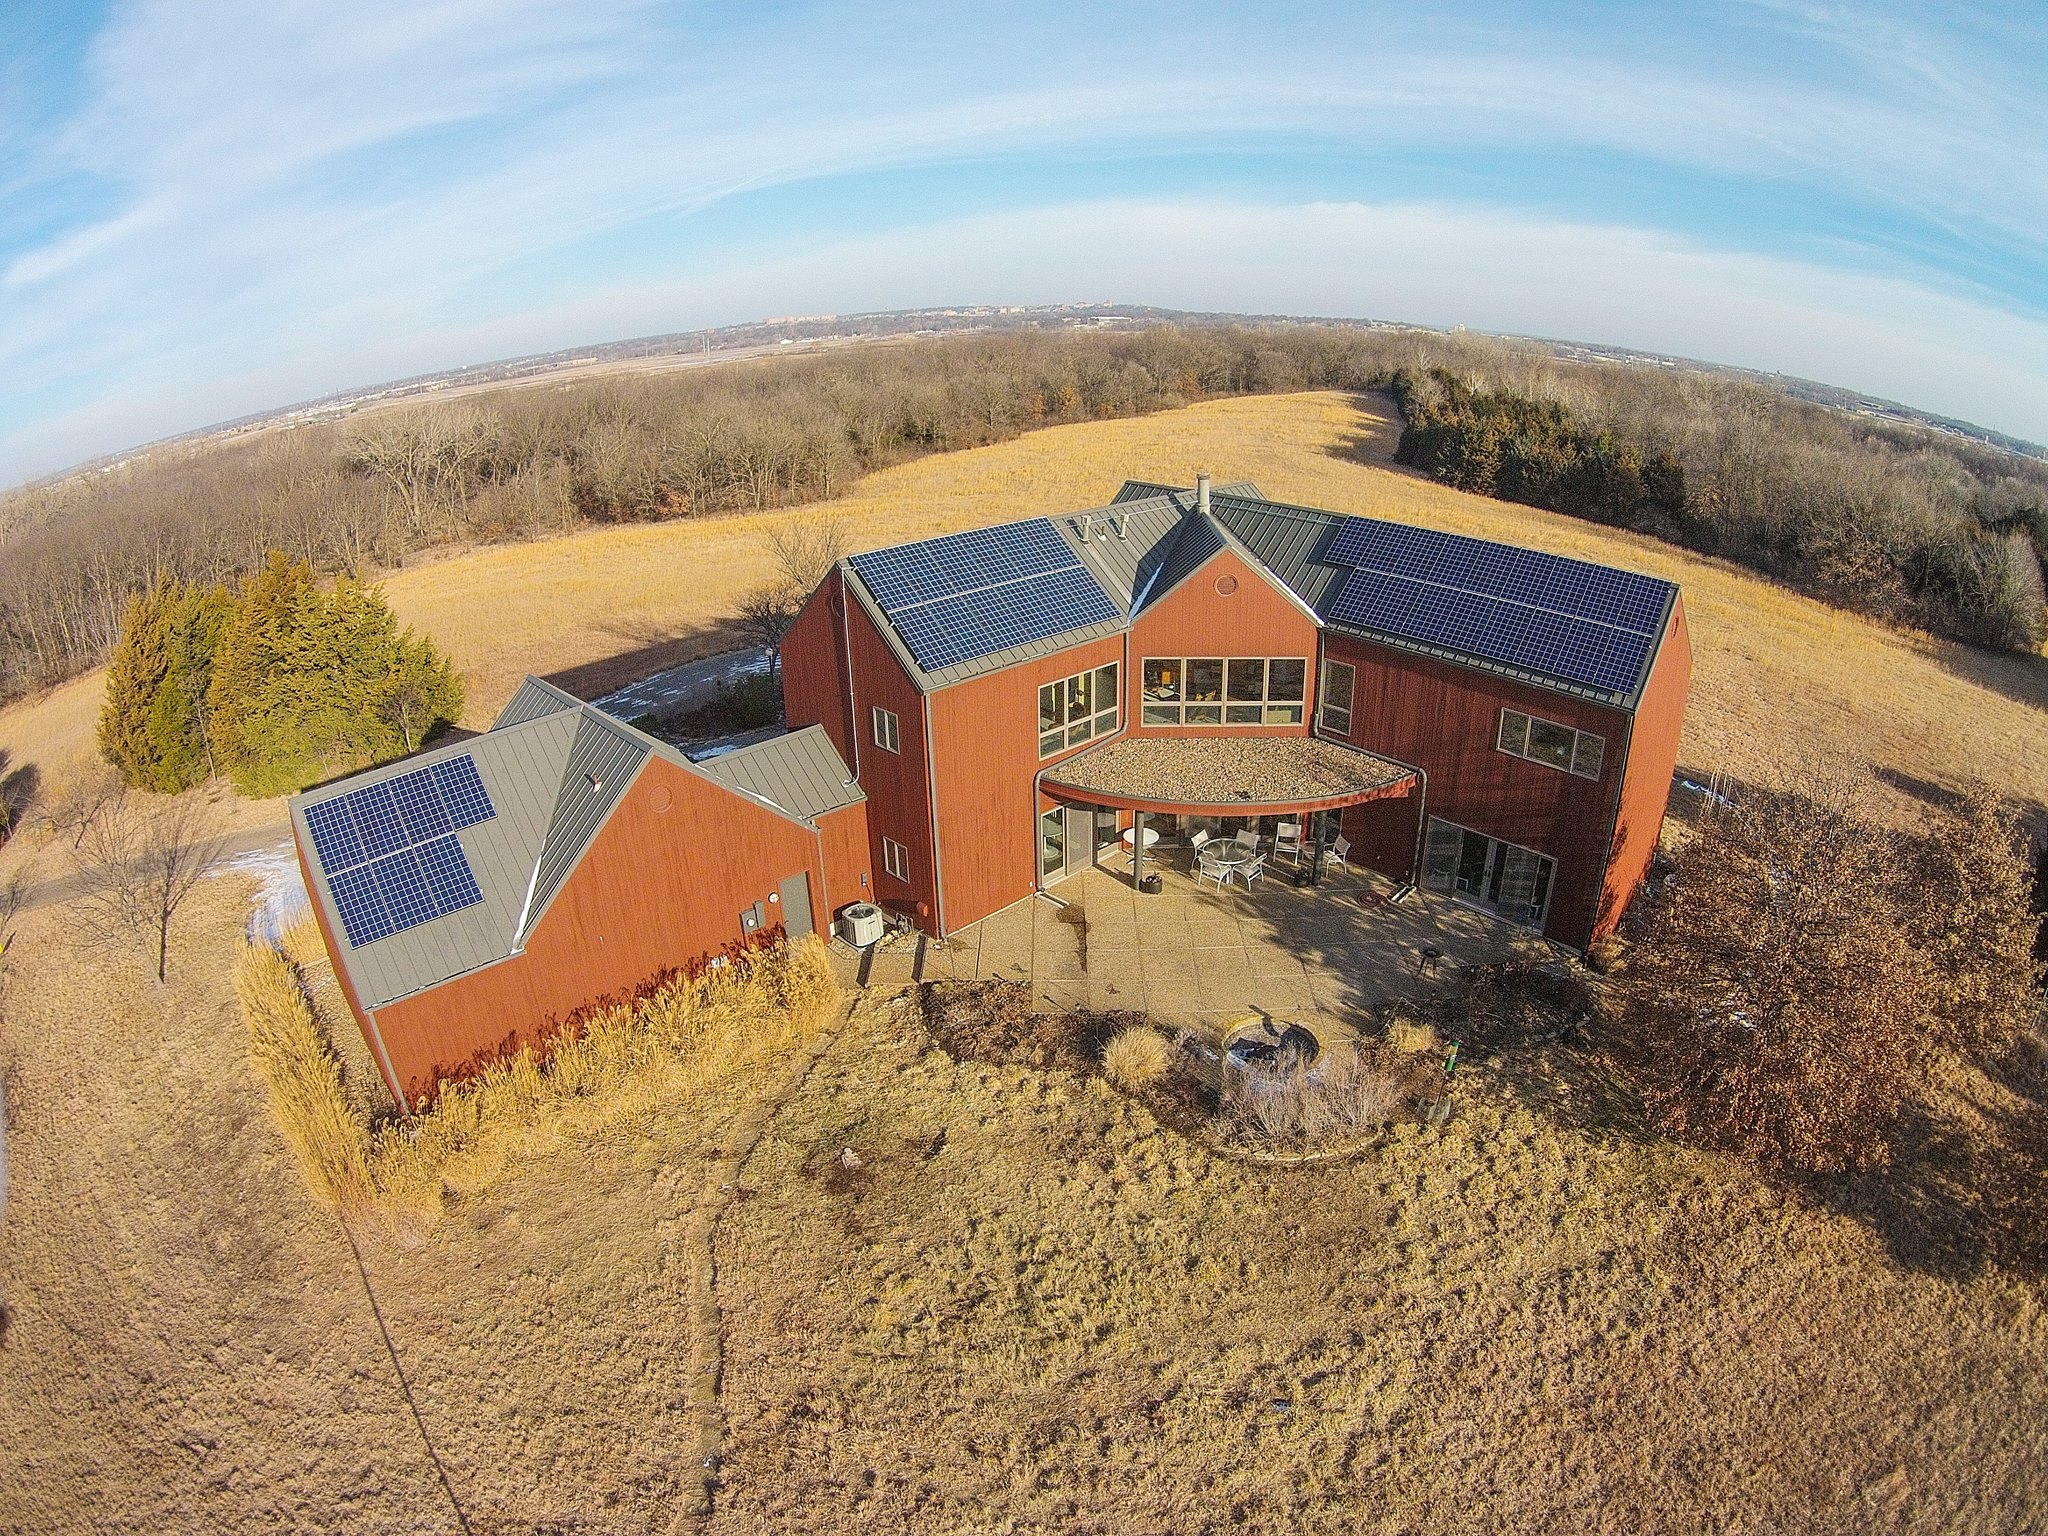 This large residential solar system spans three roof sections.